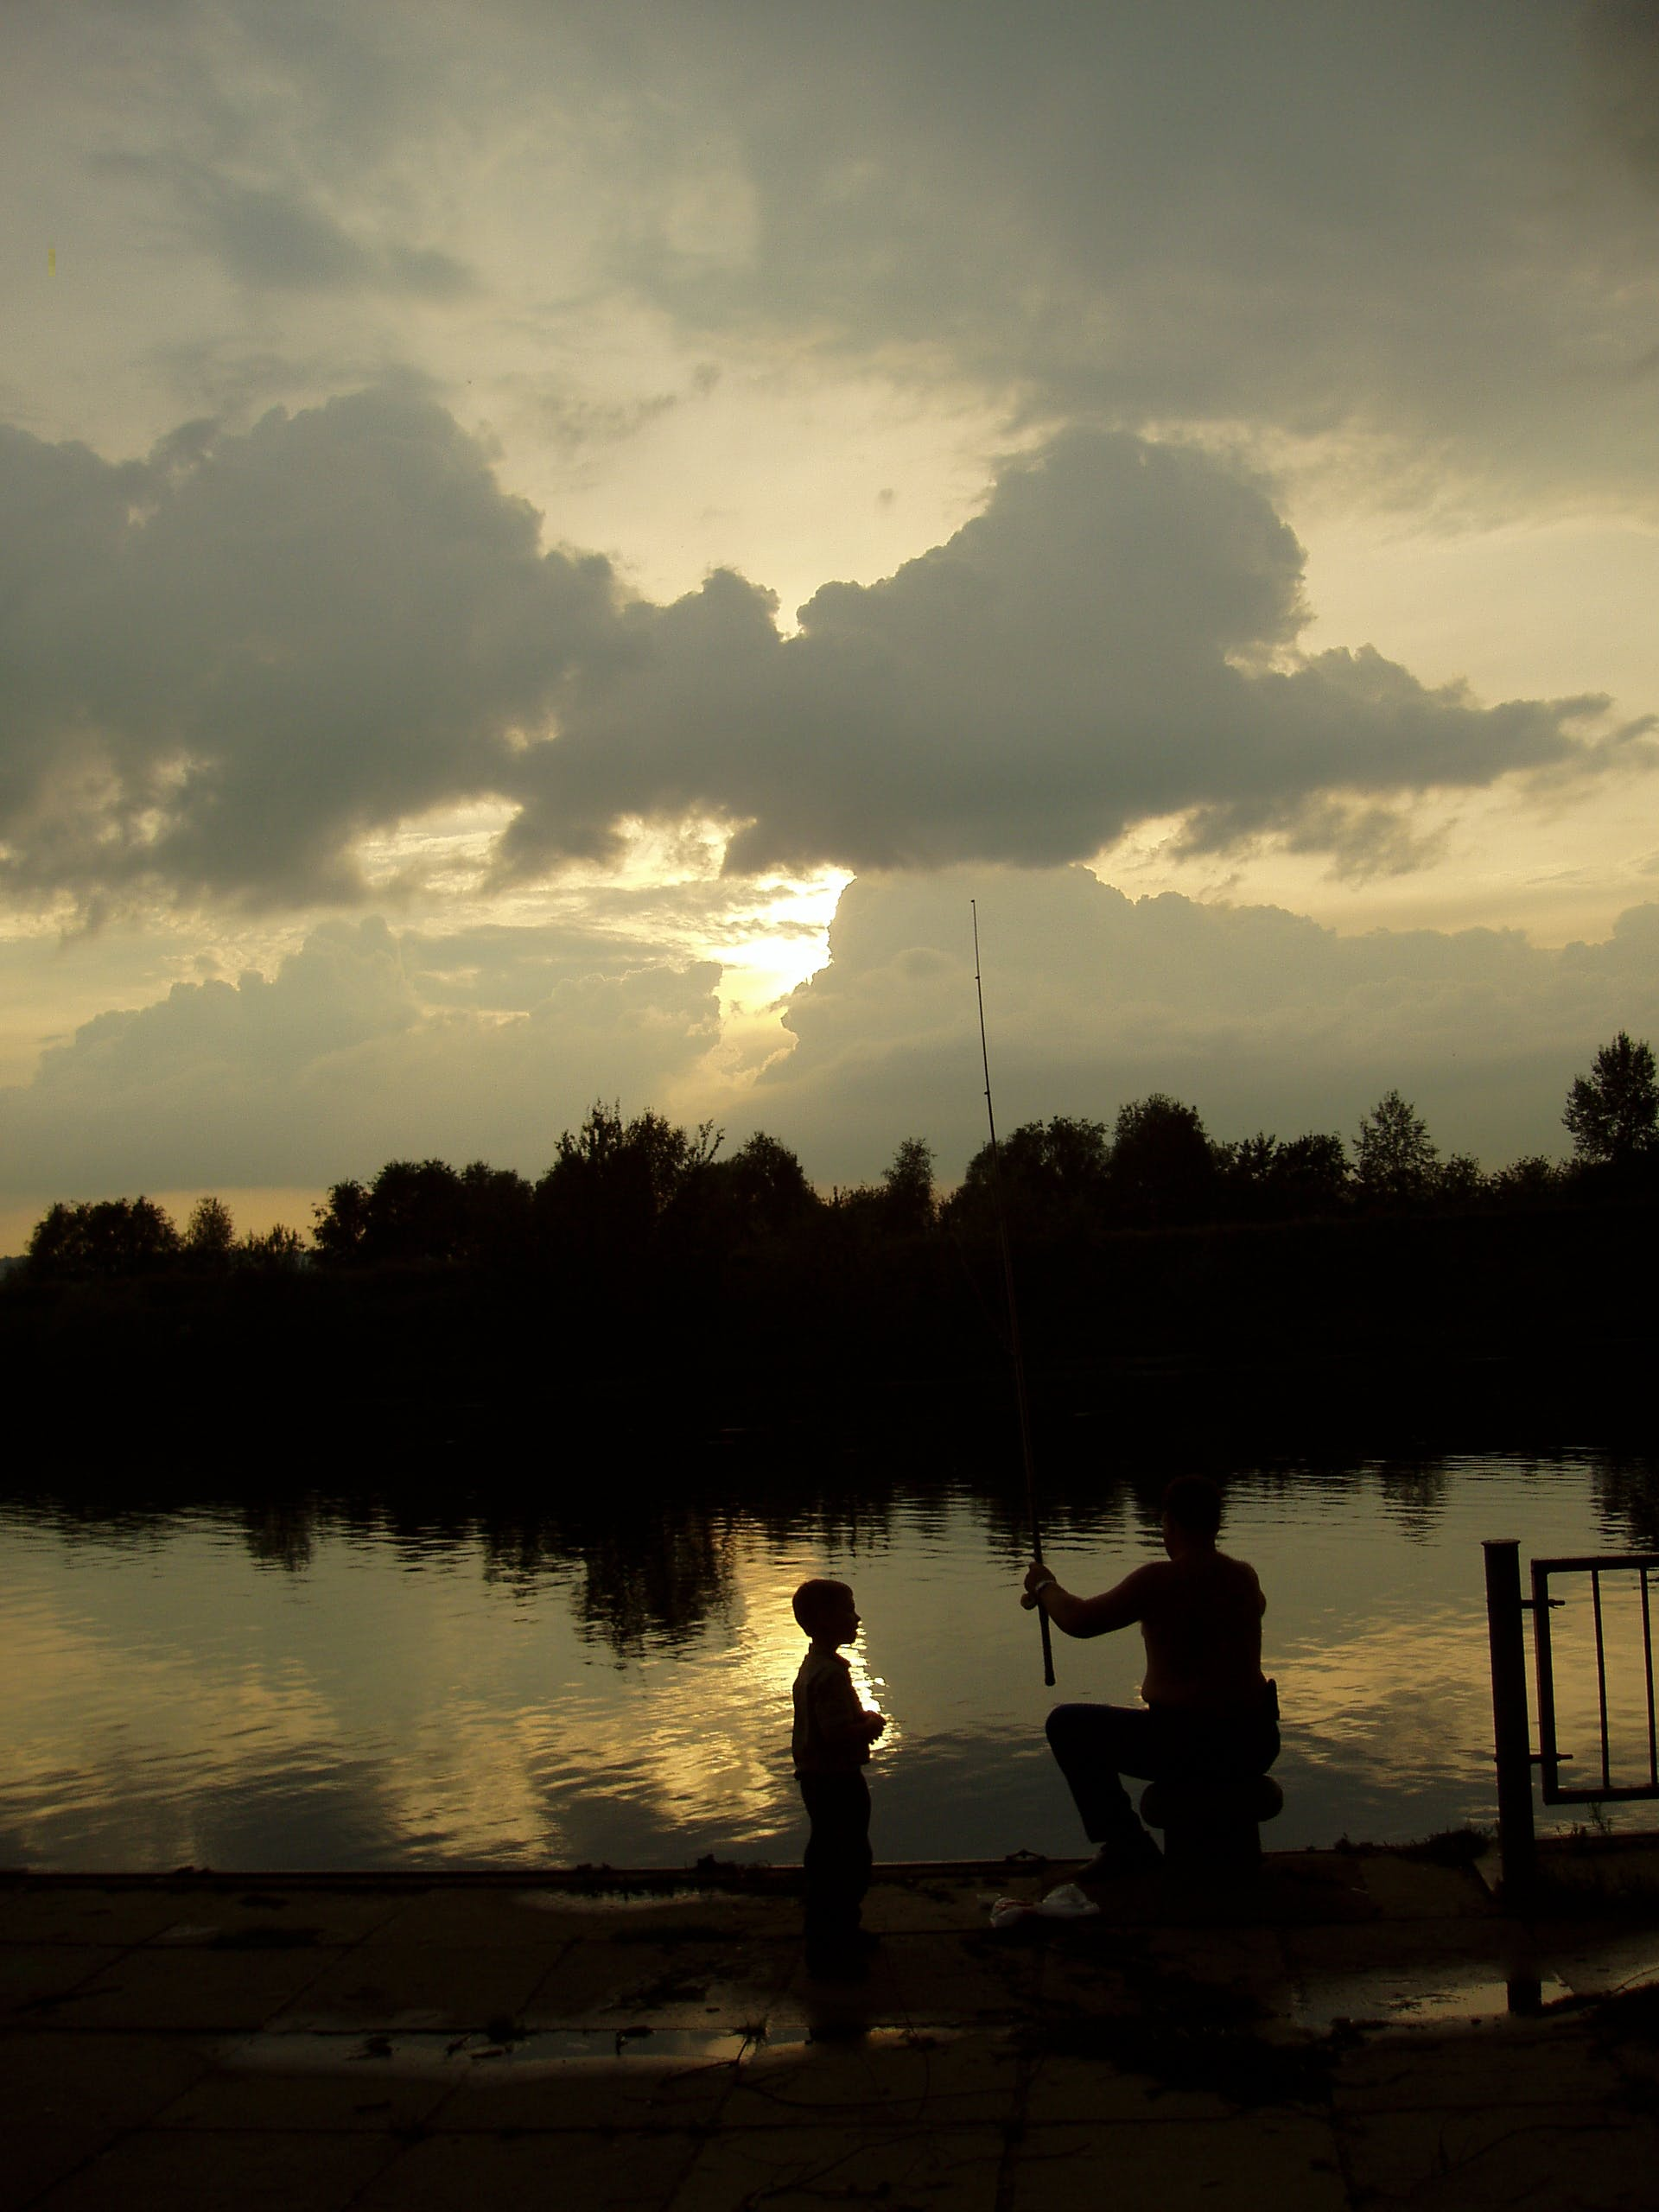 Free stock photo of dark, evening, father with son, fisherman